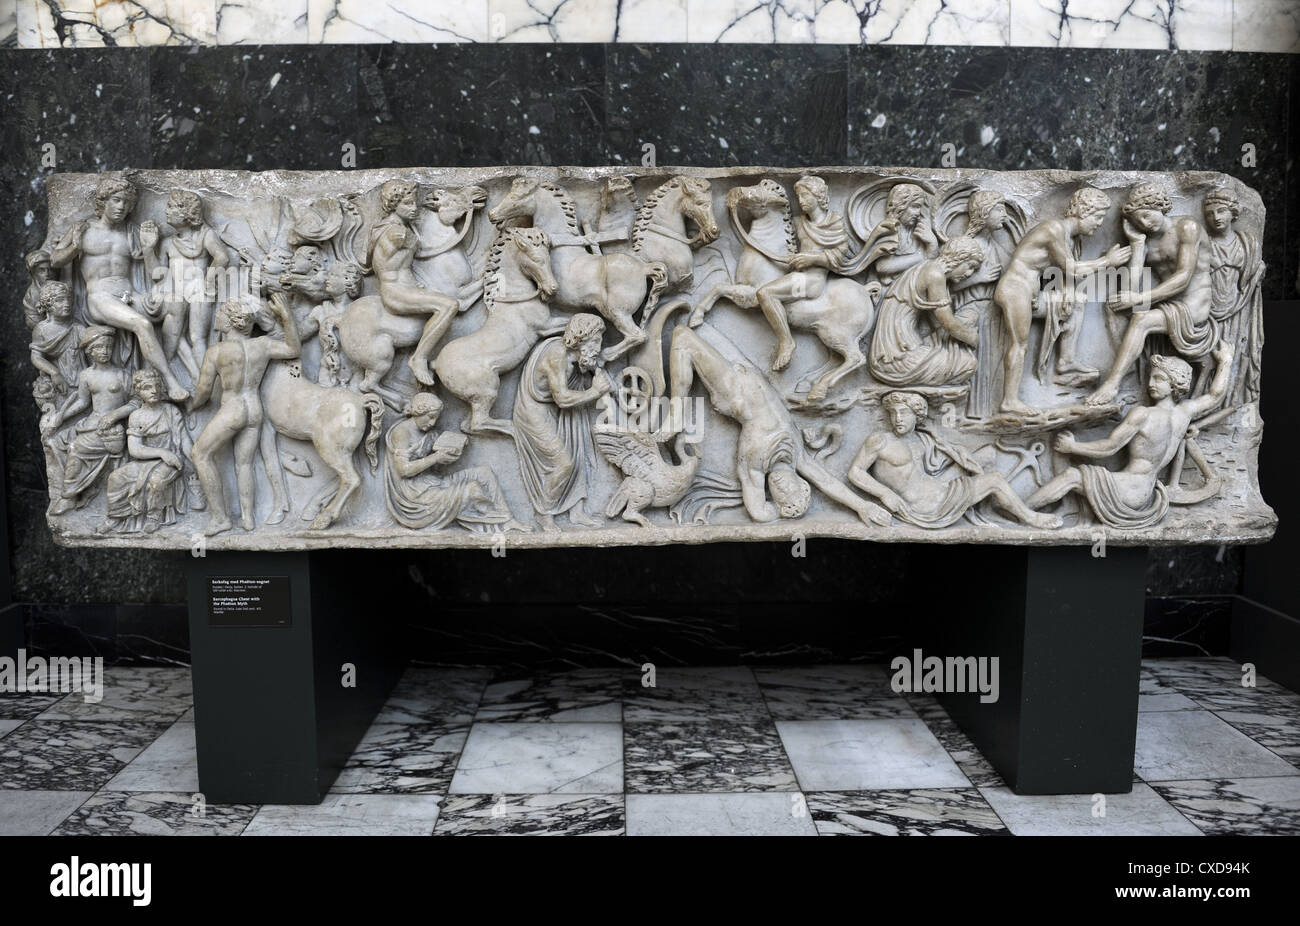 Roman Art. Sarcophagus Chest with the Phaeton Myth. The fall of Phaeton. Found in Ostia. Carlsberg Glyptotek. Copenhagen. - Stock Image